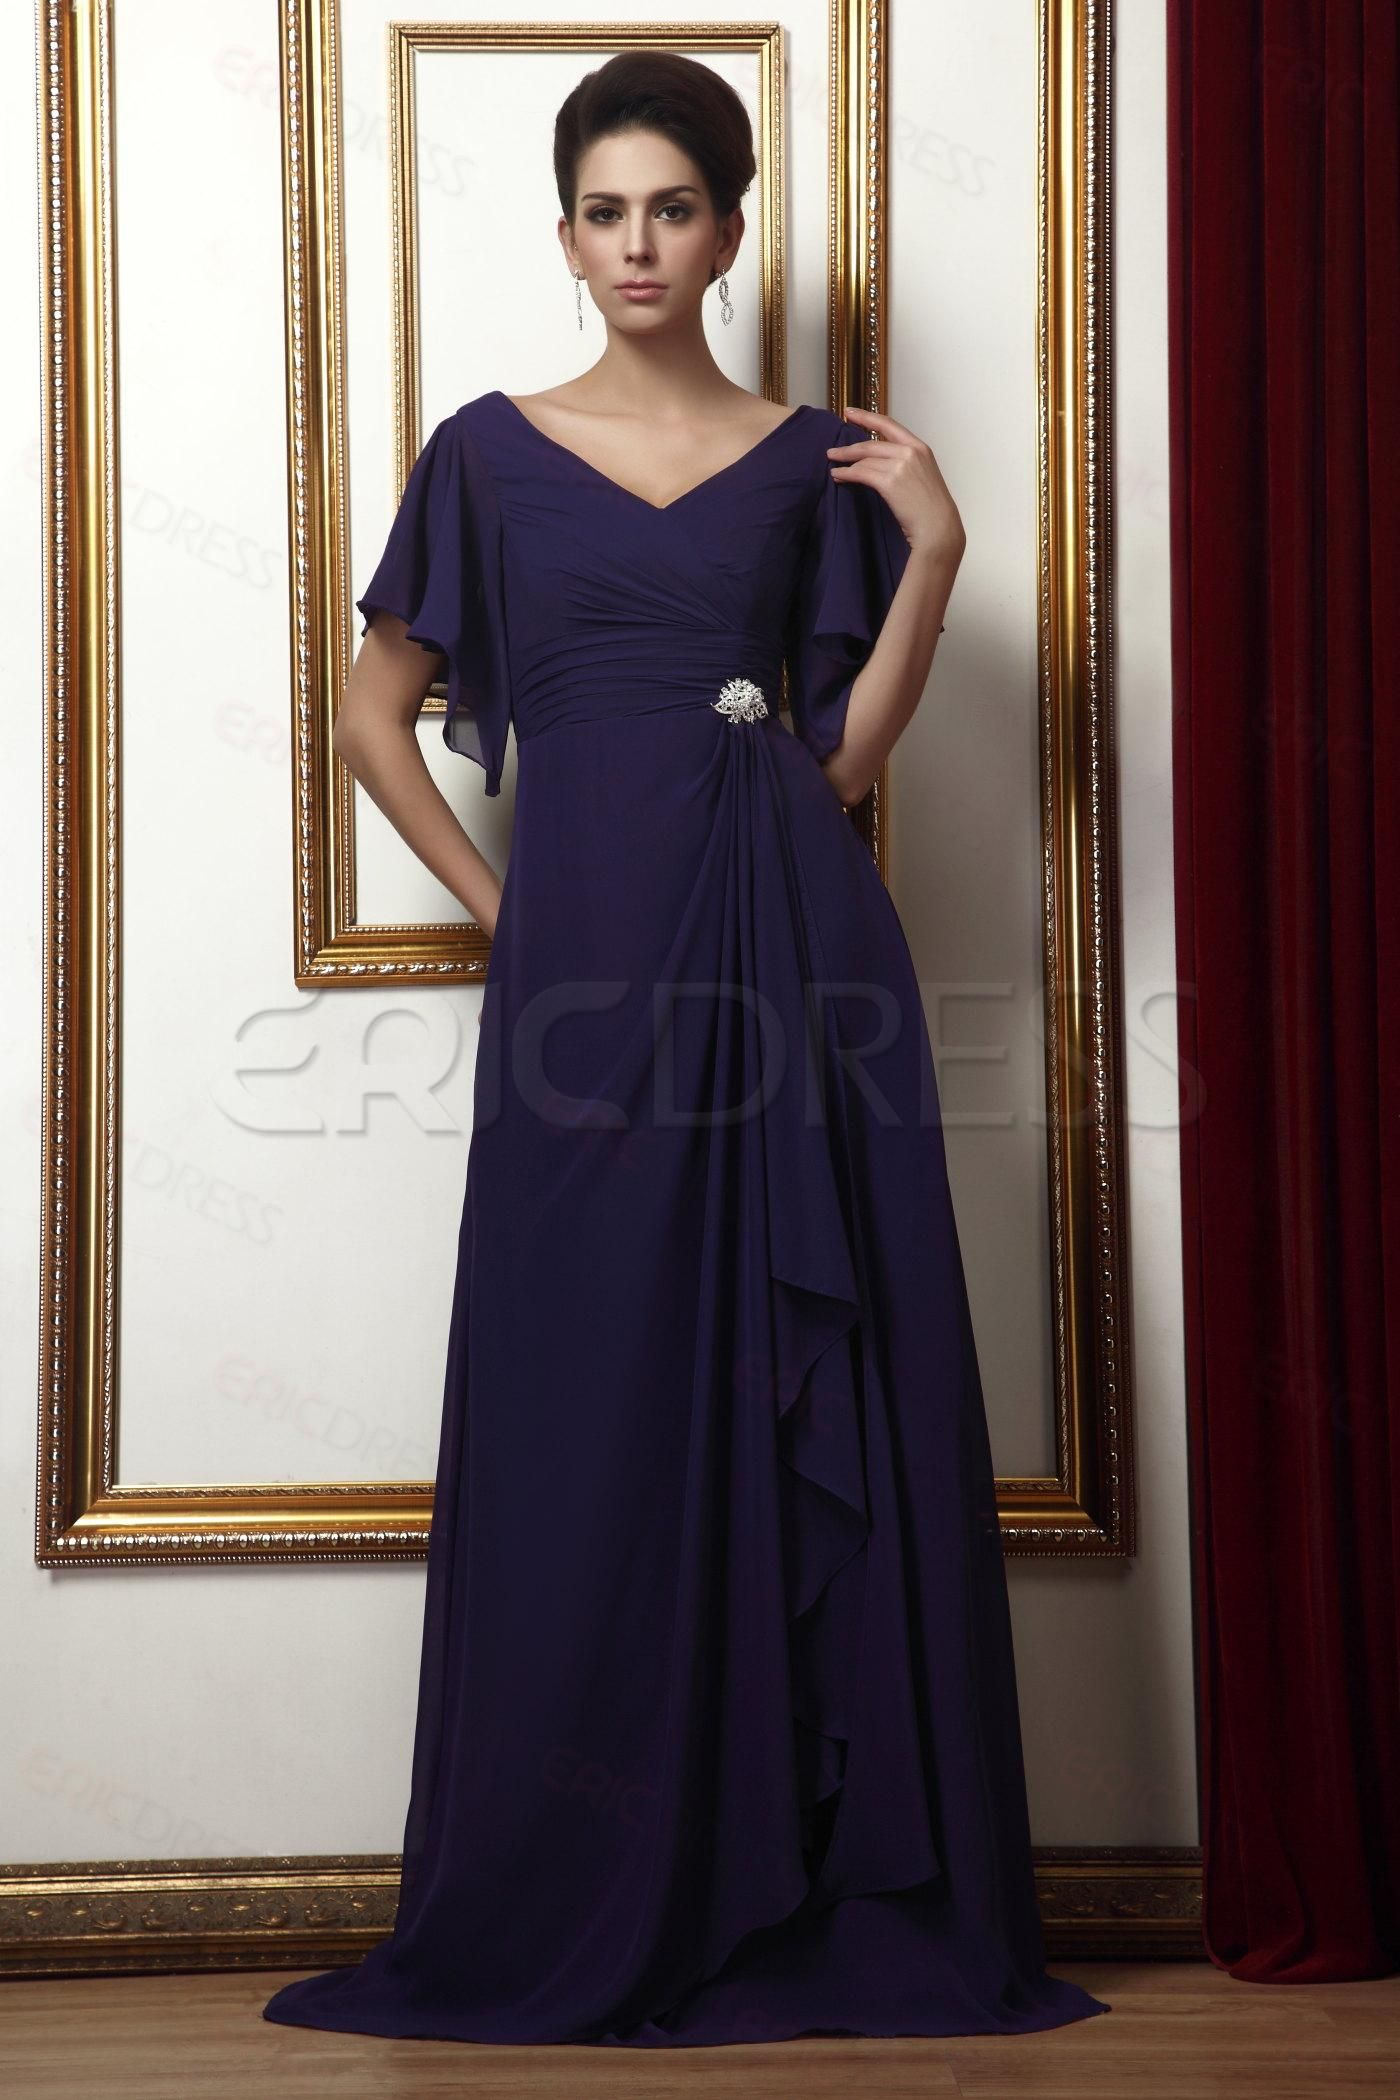 a8233768658 Fabulous Draped Floral Mother of the Bride Dresses   Plus Size Mother  Dresses at 10191002 - ericdress.com